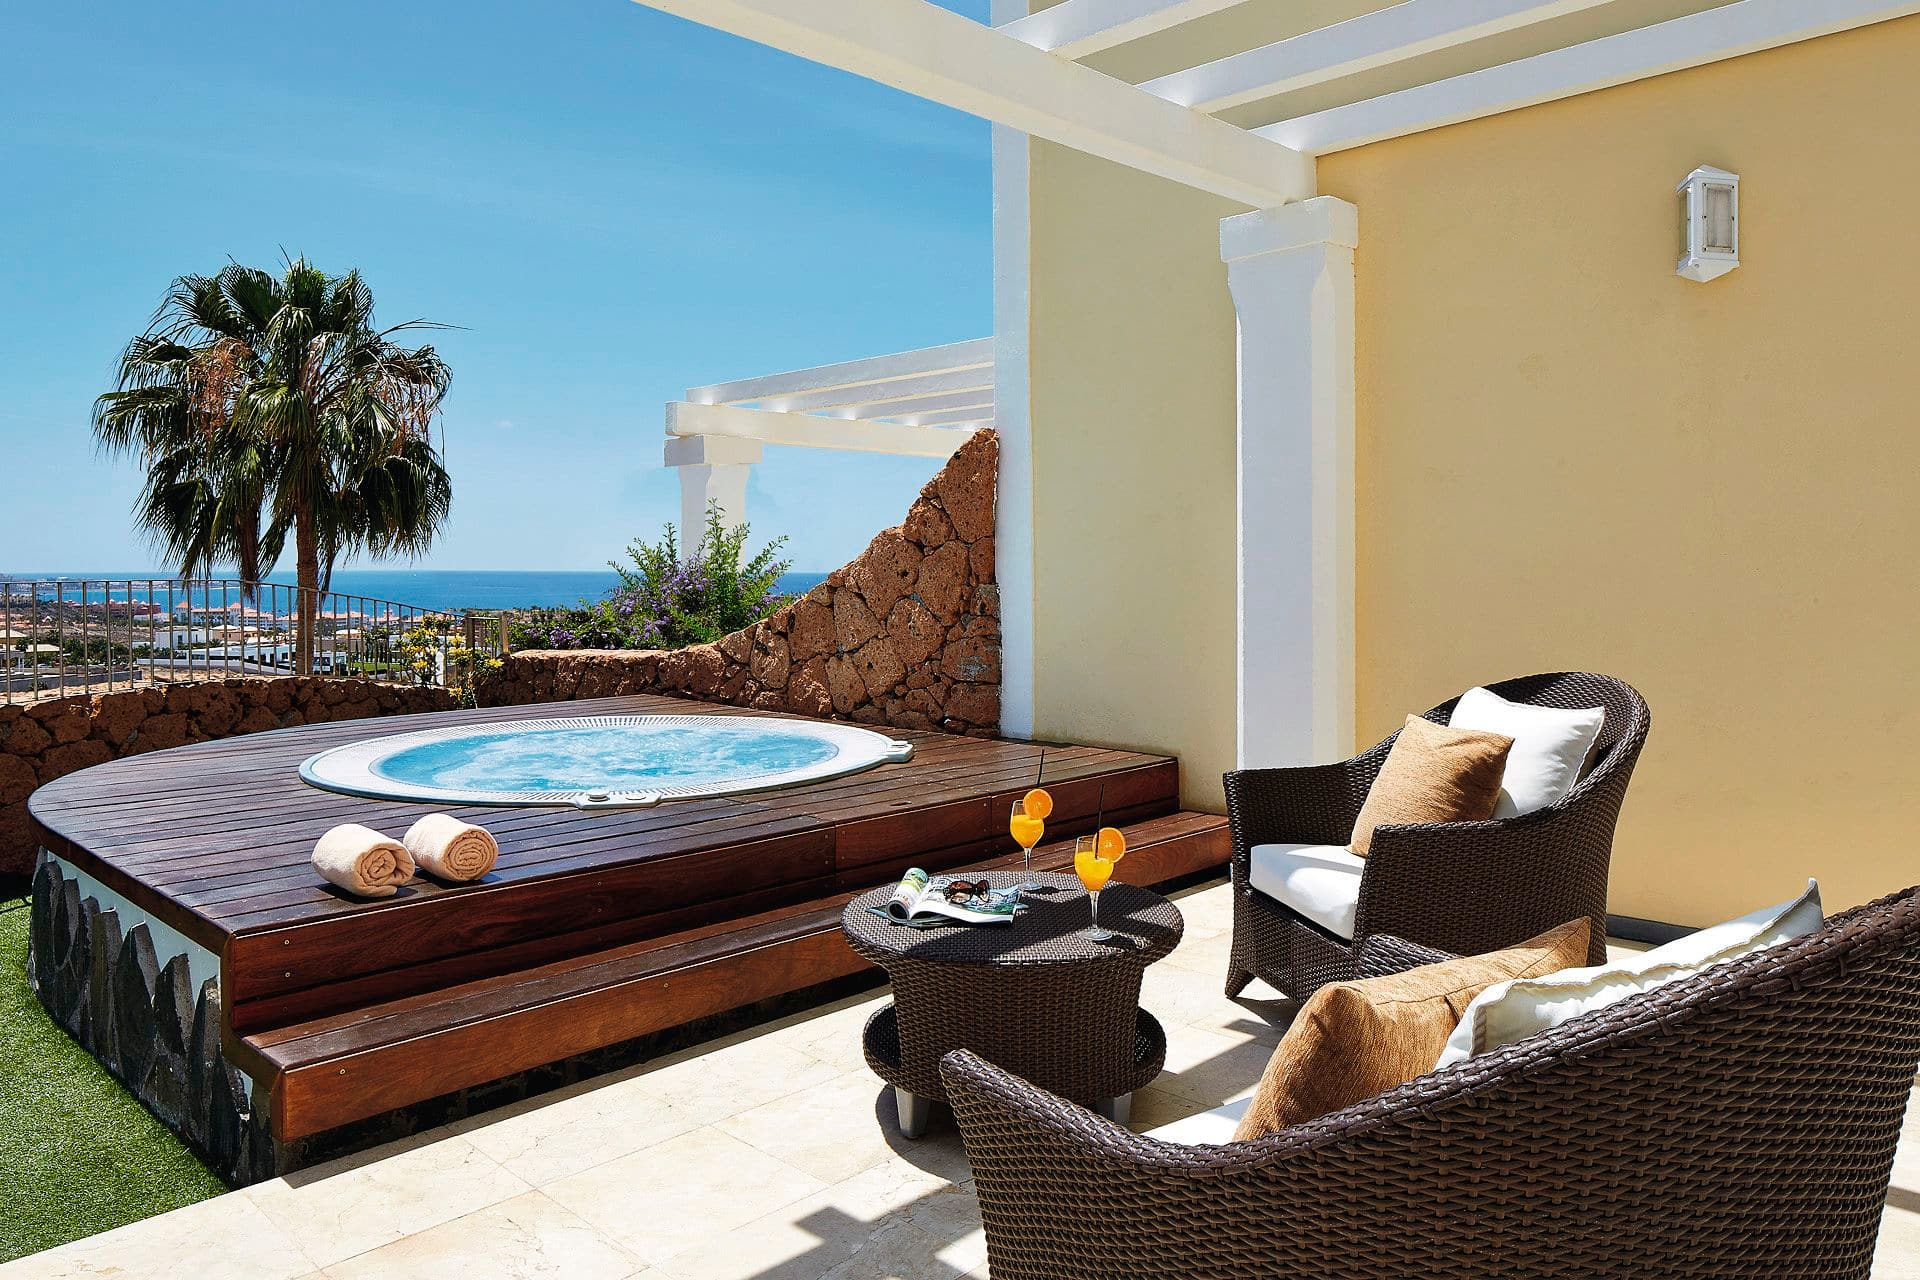 Best Hotels With Private Hot Tubs Tui